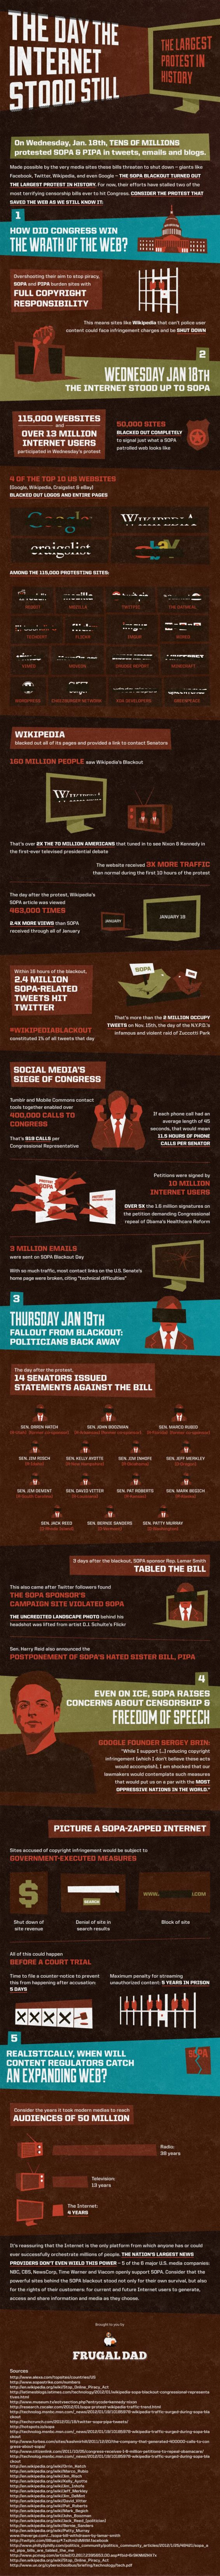 sopa-infographic1